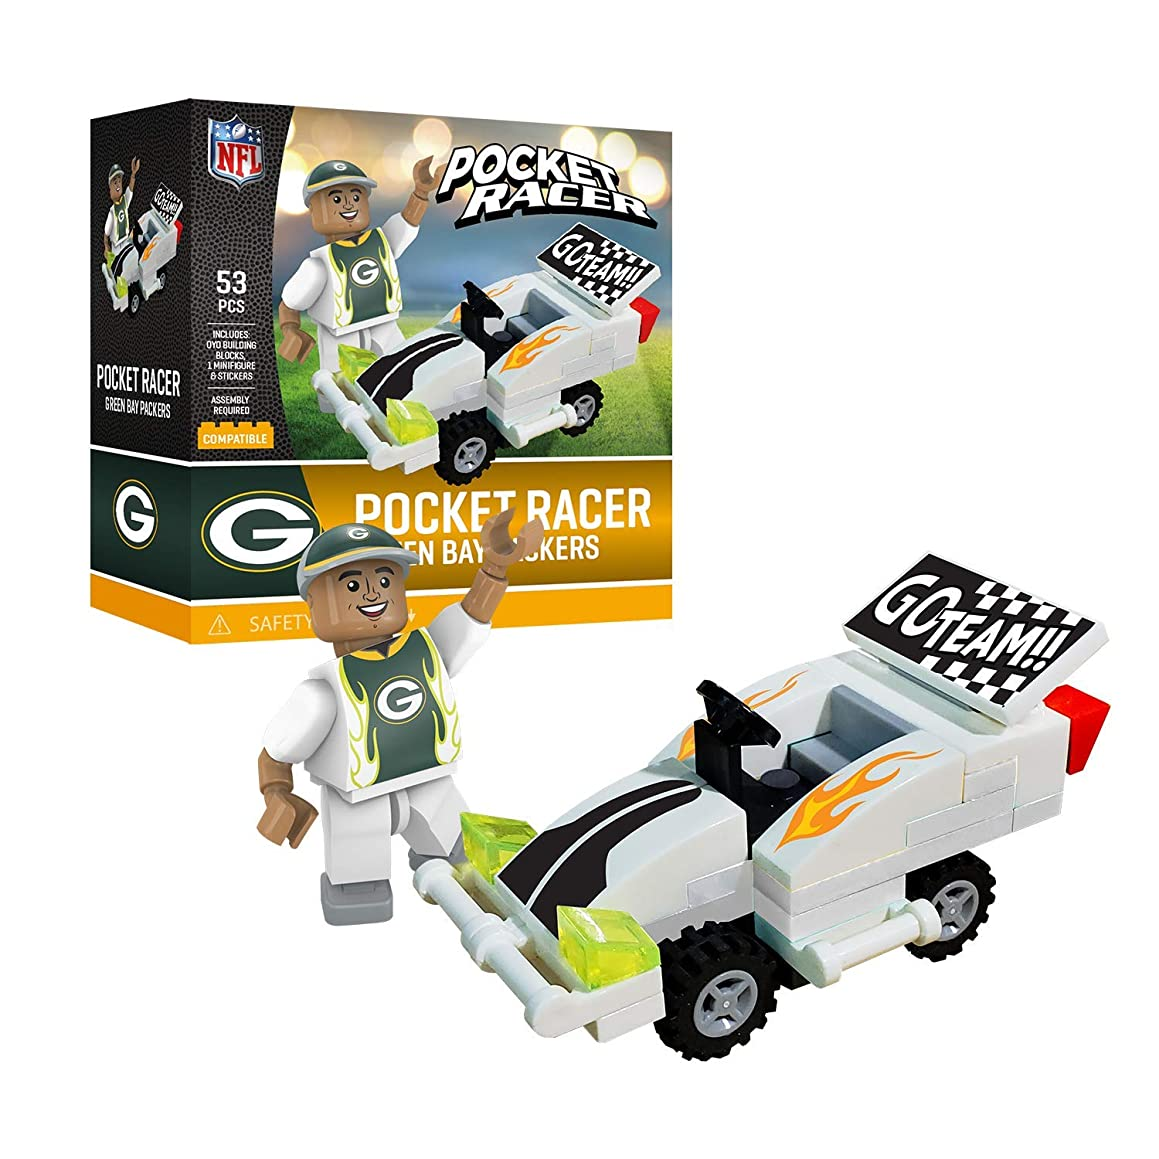 Green Bay Packers OYO Sports Toys Pocket Racer Set with Minifigure 53PCS